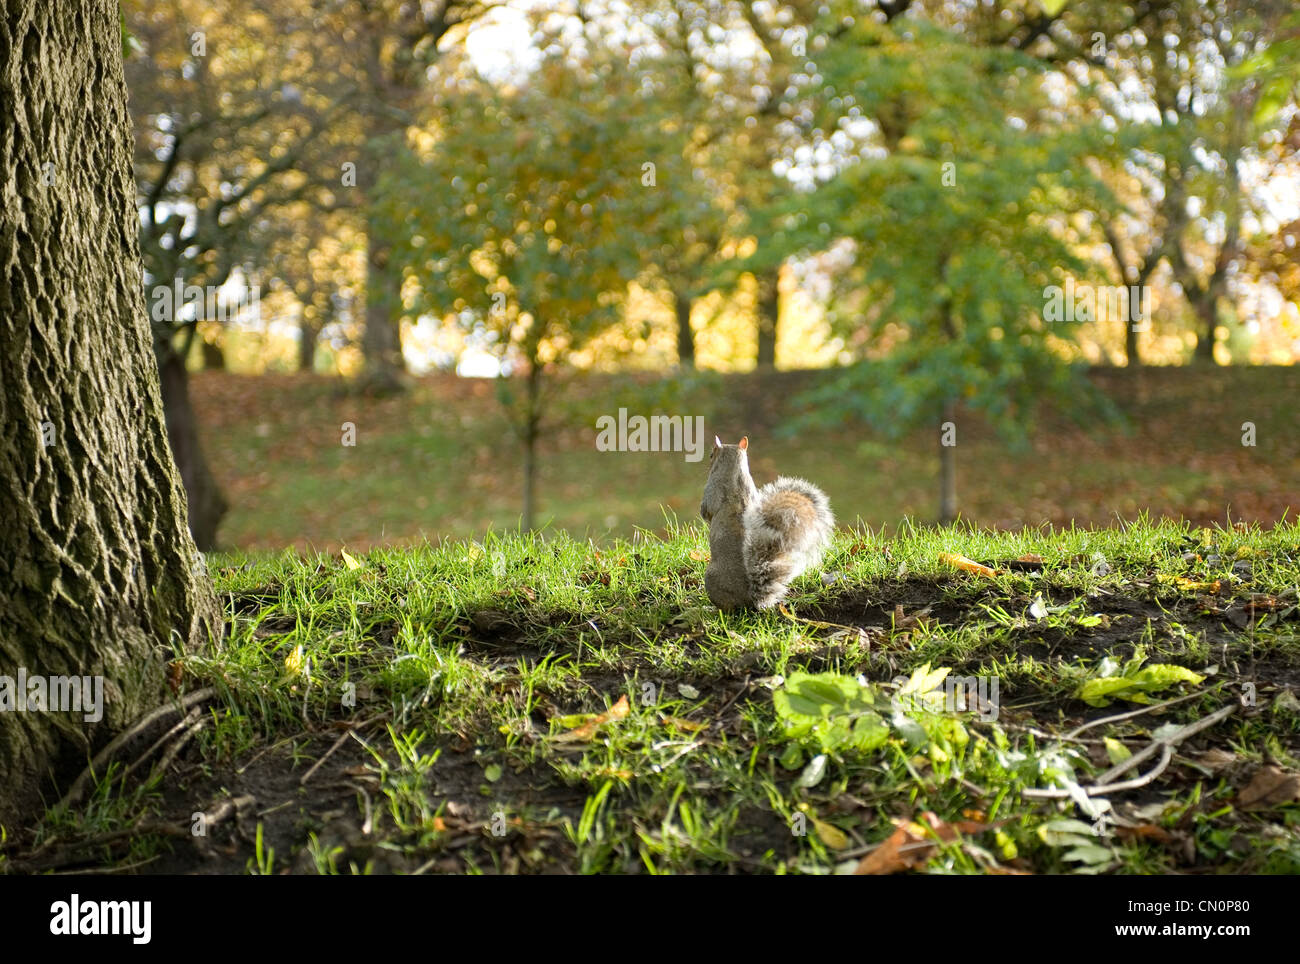 The back of a squirrel on autumn leaves in the park looking away from the camera - Stock Image